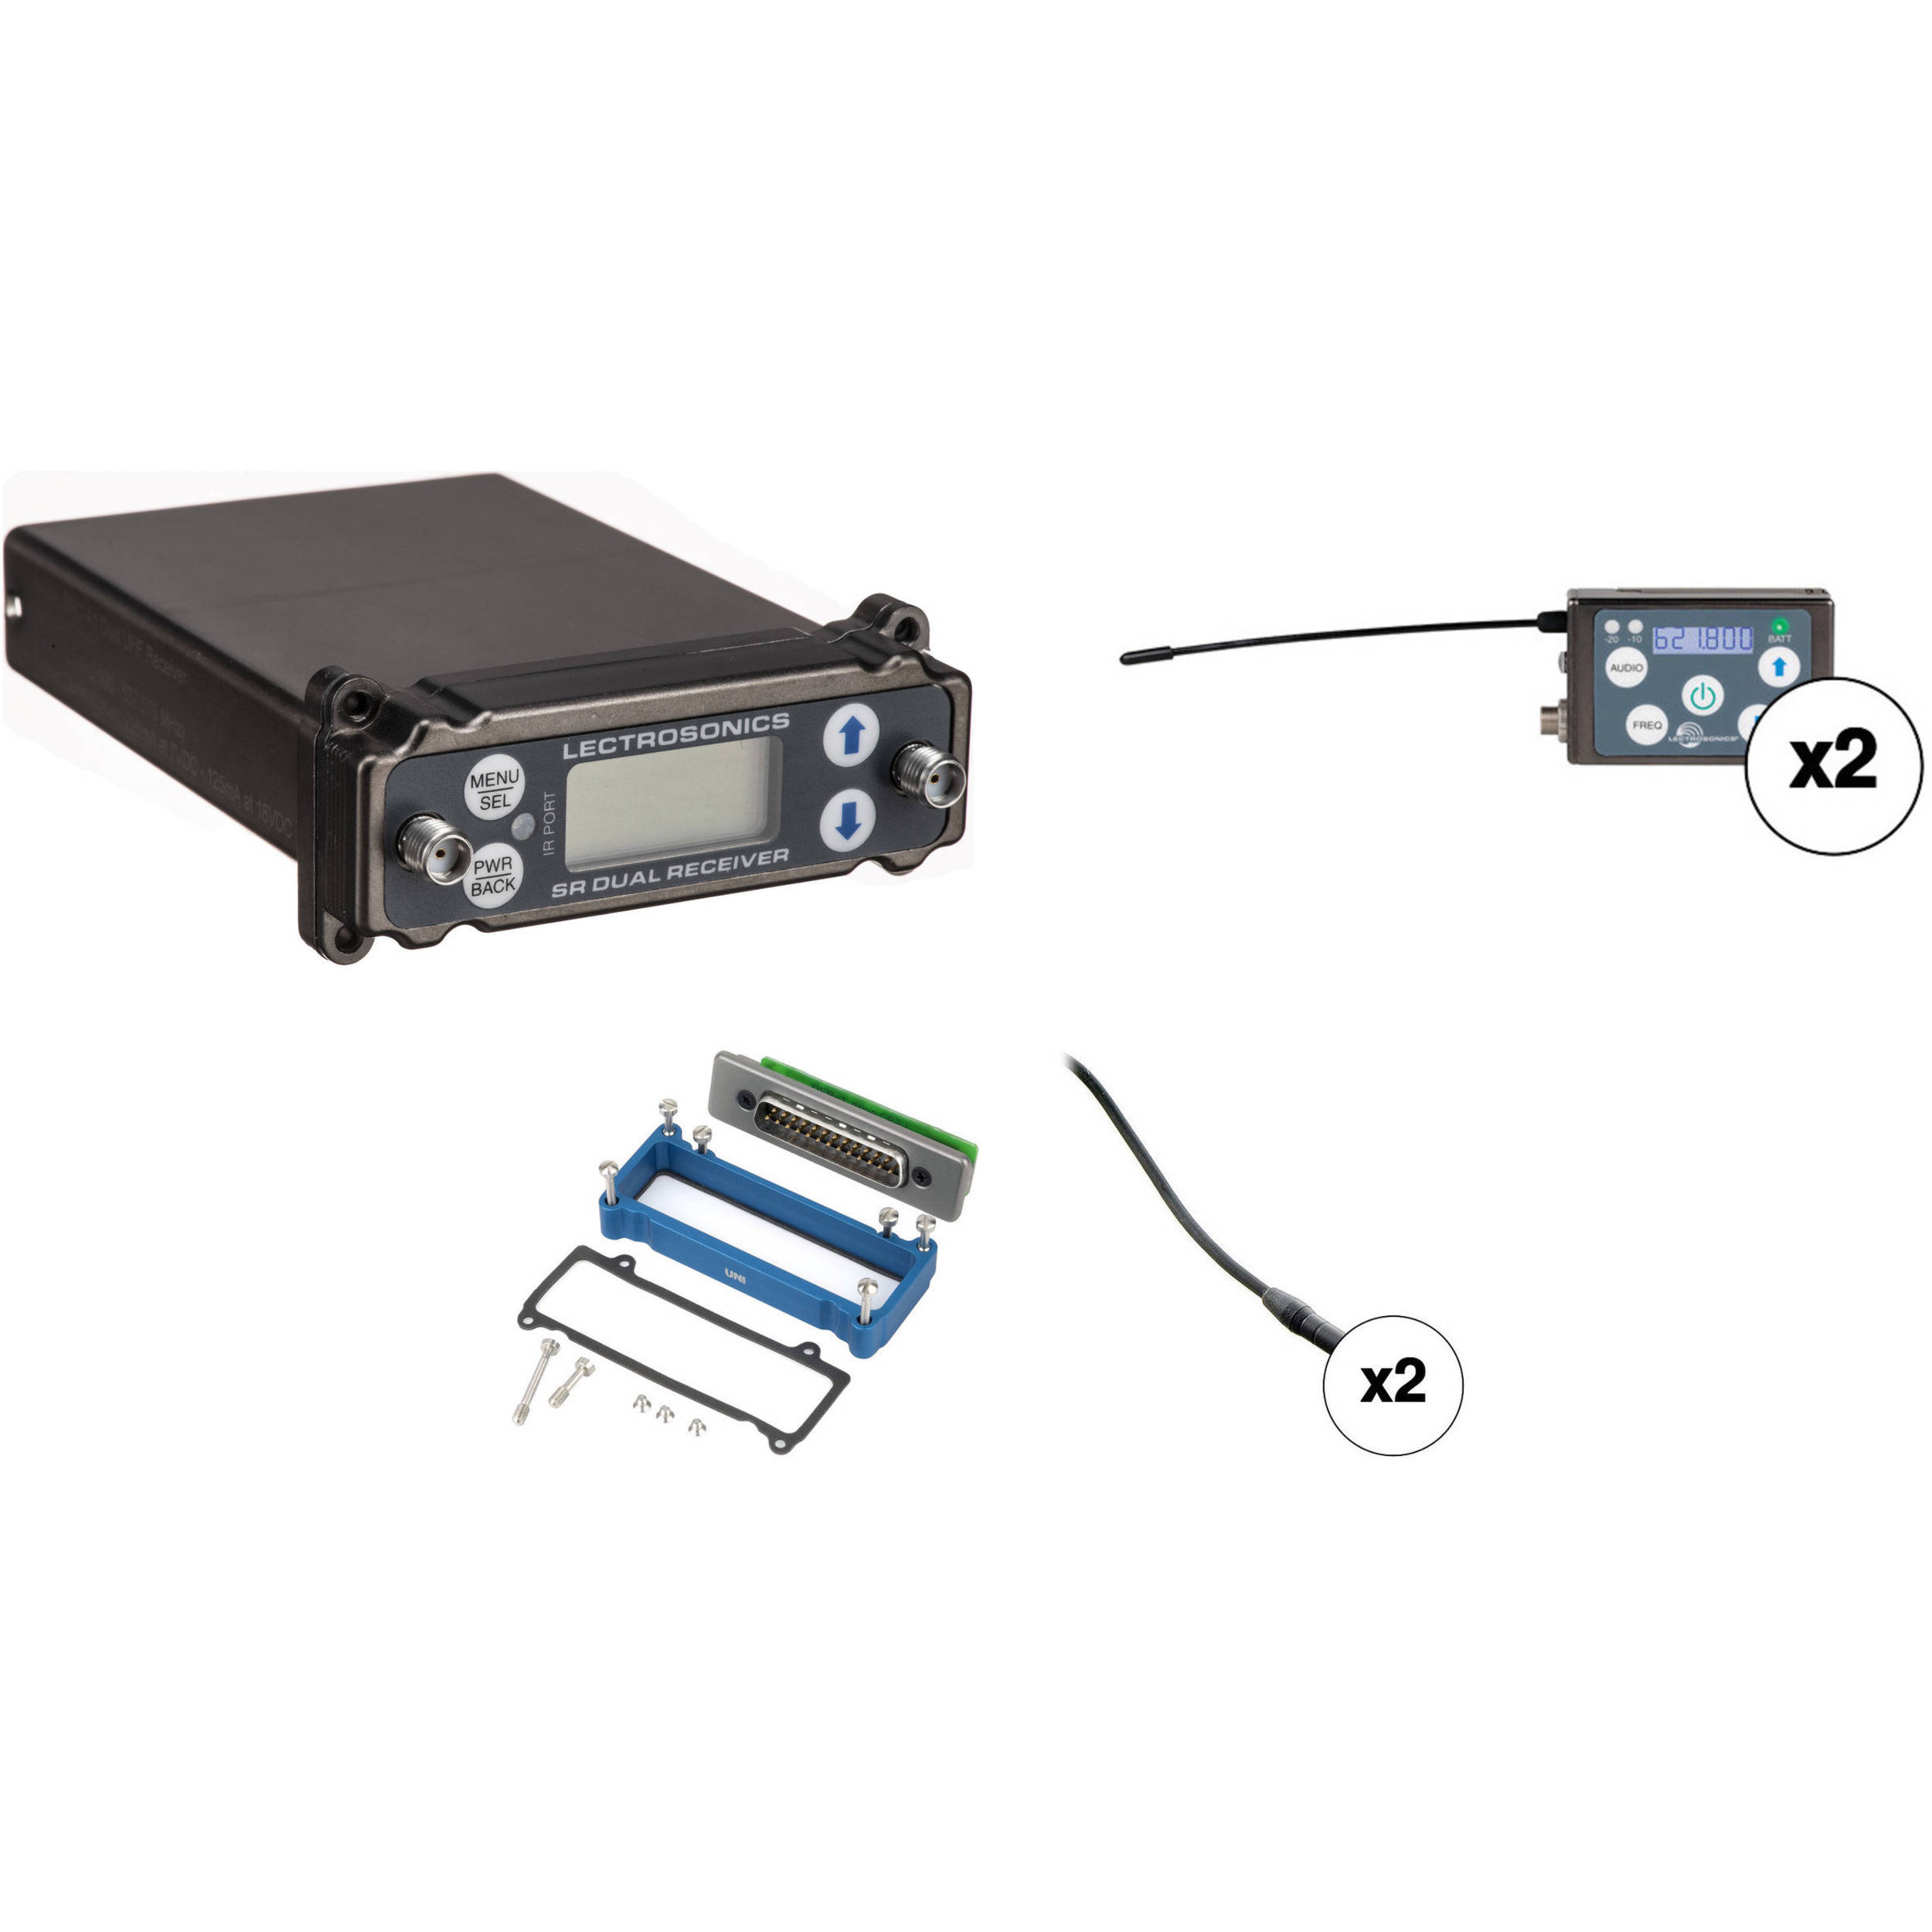 lectrosonics 2-person src wireless omni lavalier microphone system kit for  superslot dock (a1: 470 to 537 mhz)